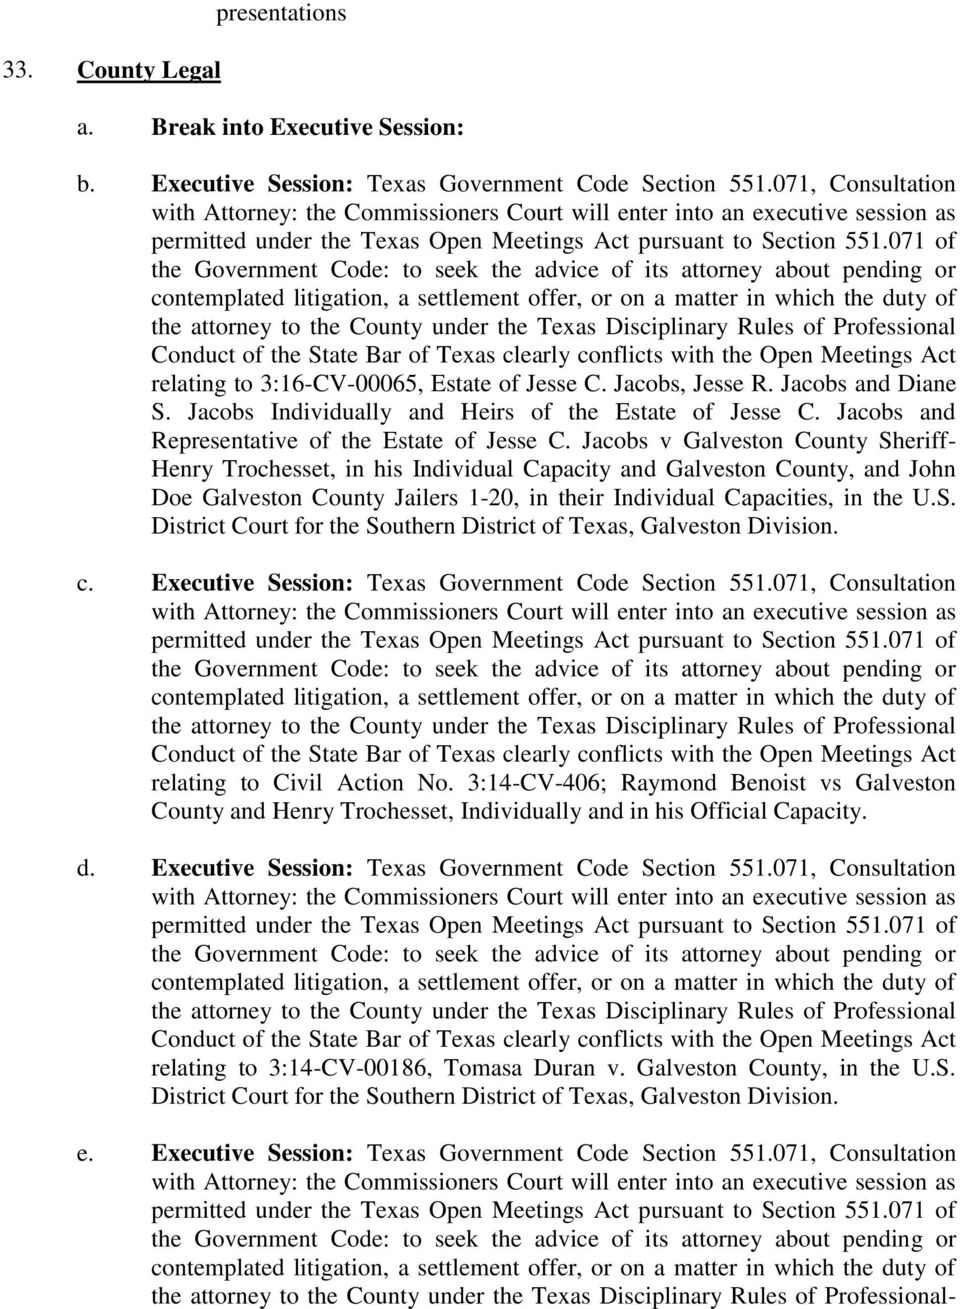 Jacobs v Galveston County Sheriff- Henry Trochesset, in his Individual Capacity and Galveston County, and John Doe Galveston County Jailers 1-20, in their Individual Capacities, in the U.S. District Court for the Southern District of Texas, Galveston Division.